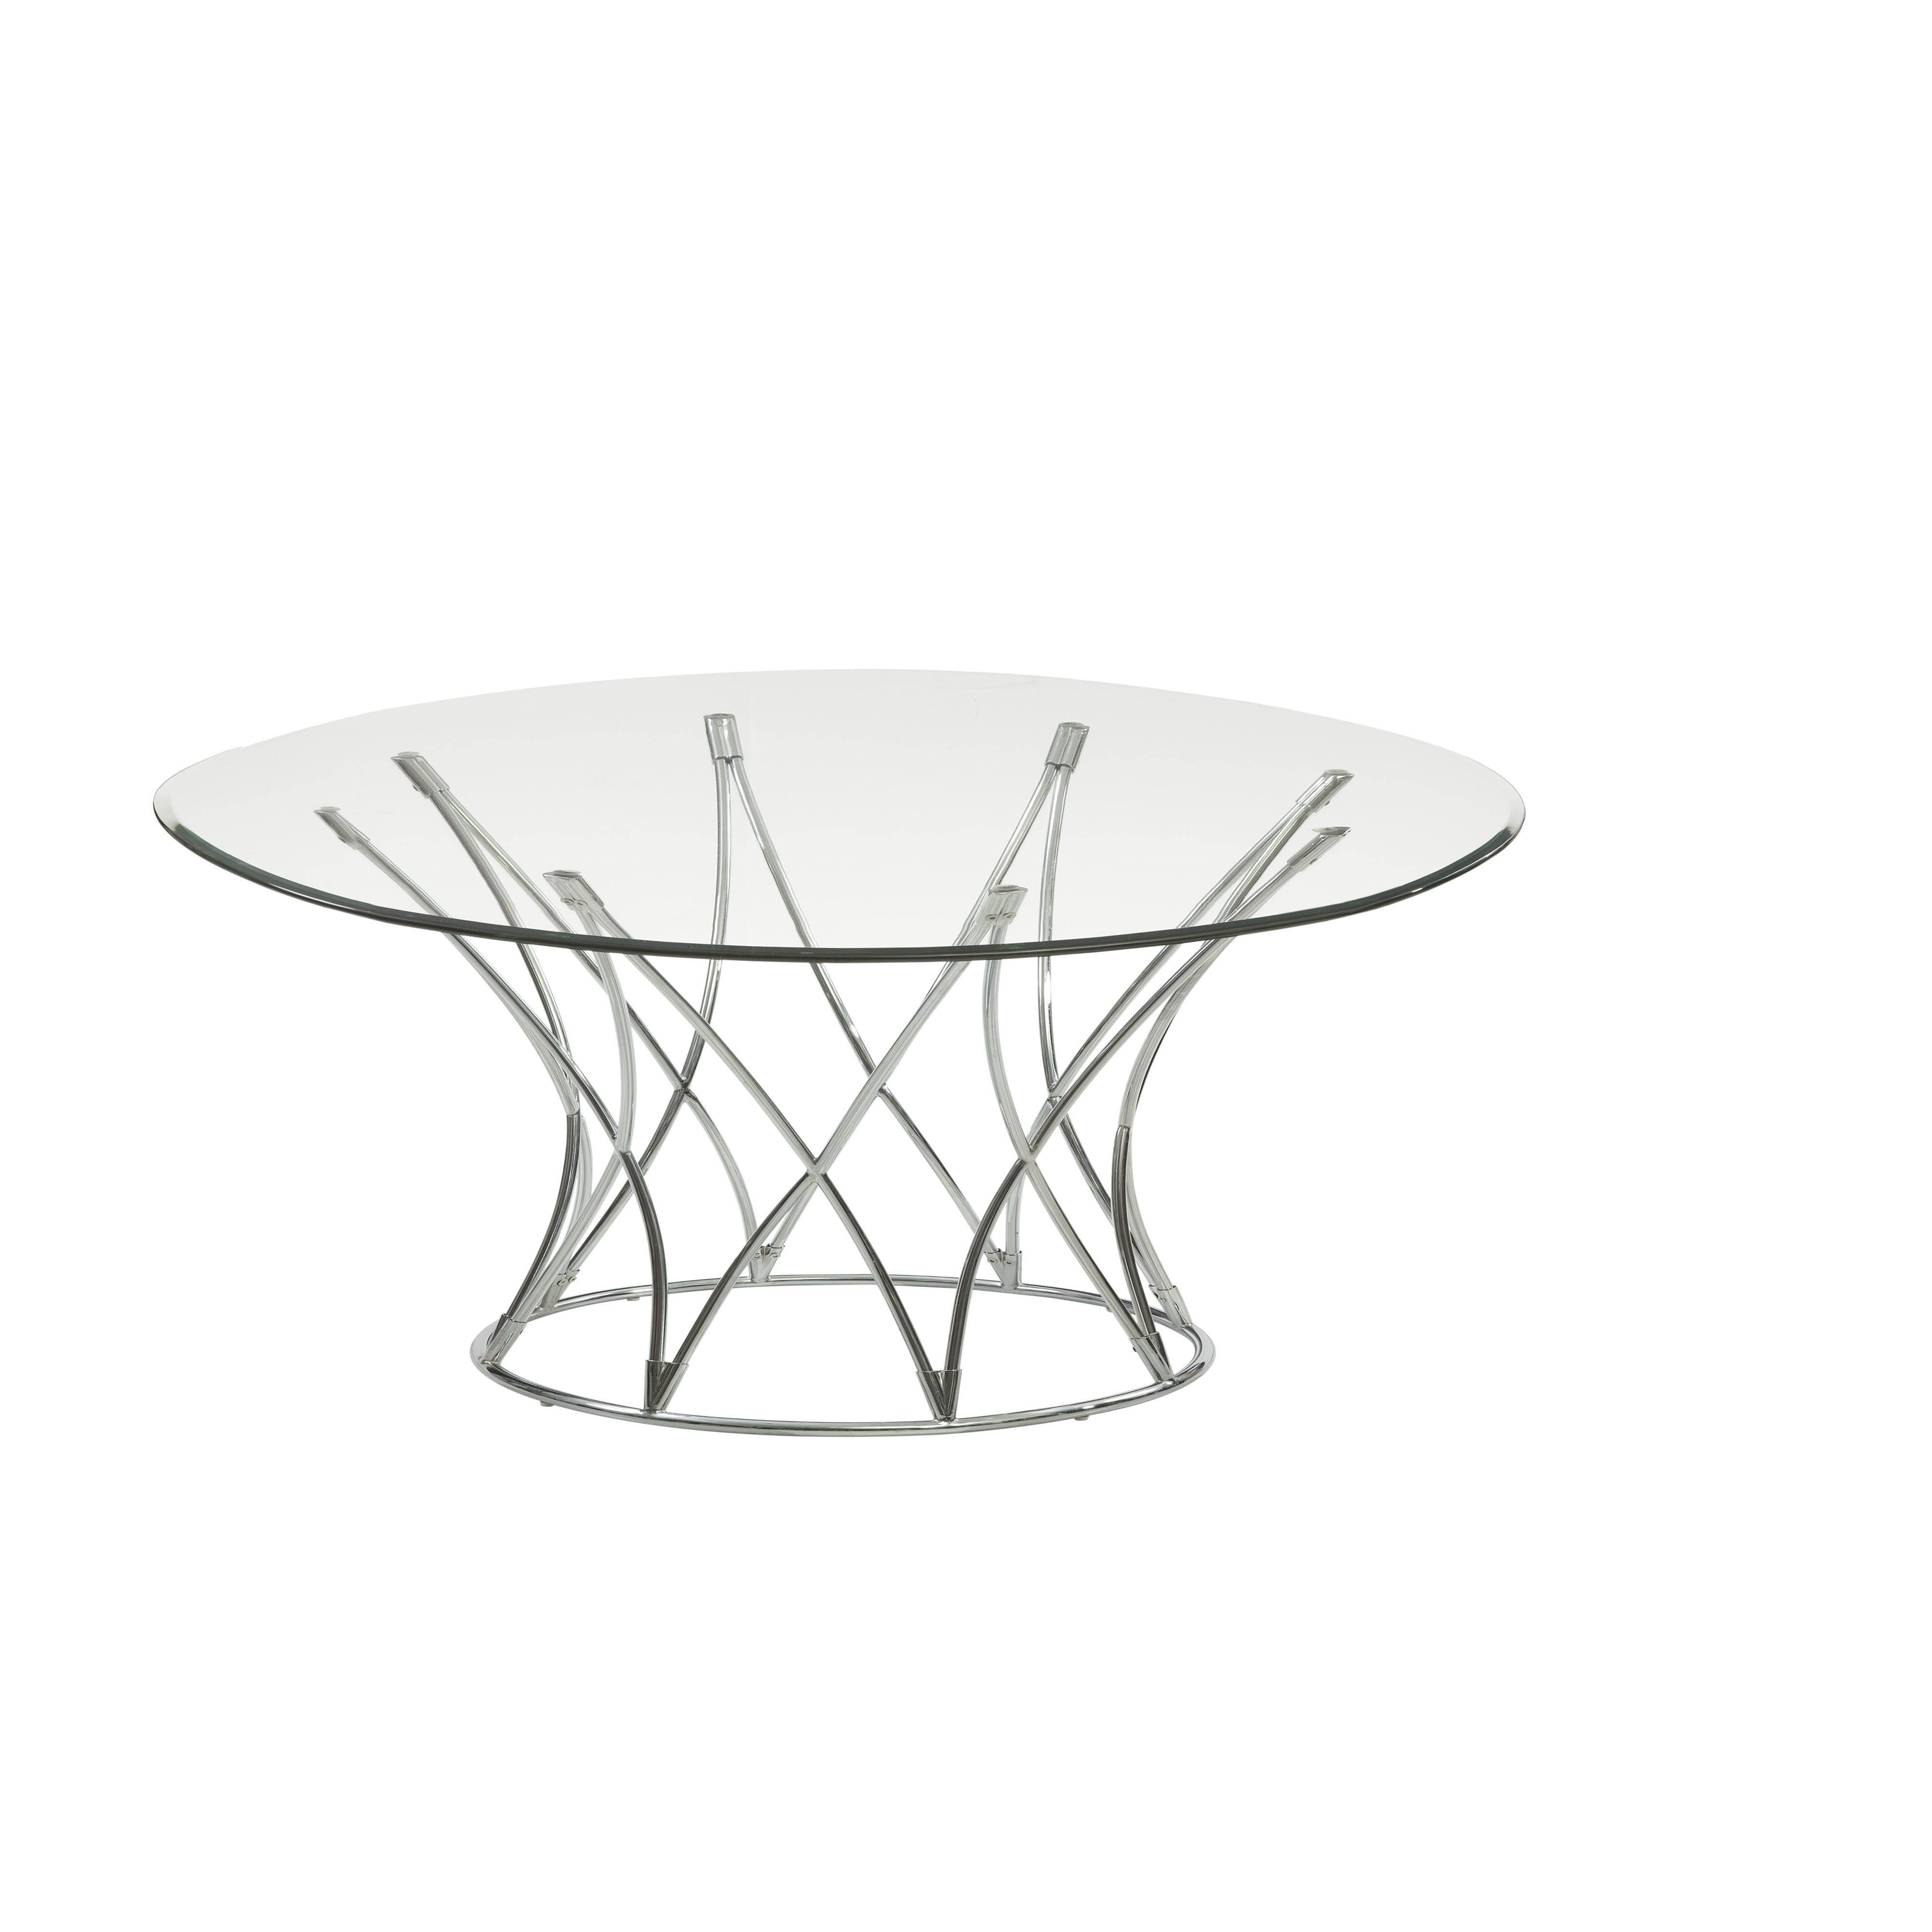 Thoroughly Modern Mercer Round Cocktail Table by Bassett Mirror at Alison Craig Home Furnishings